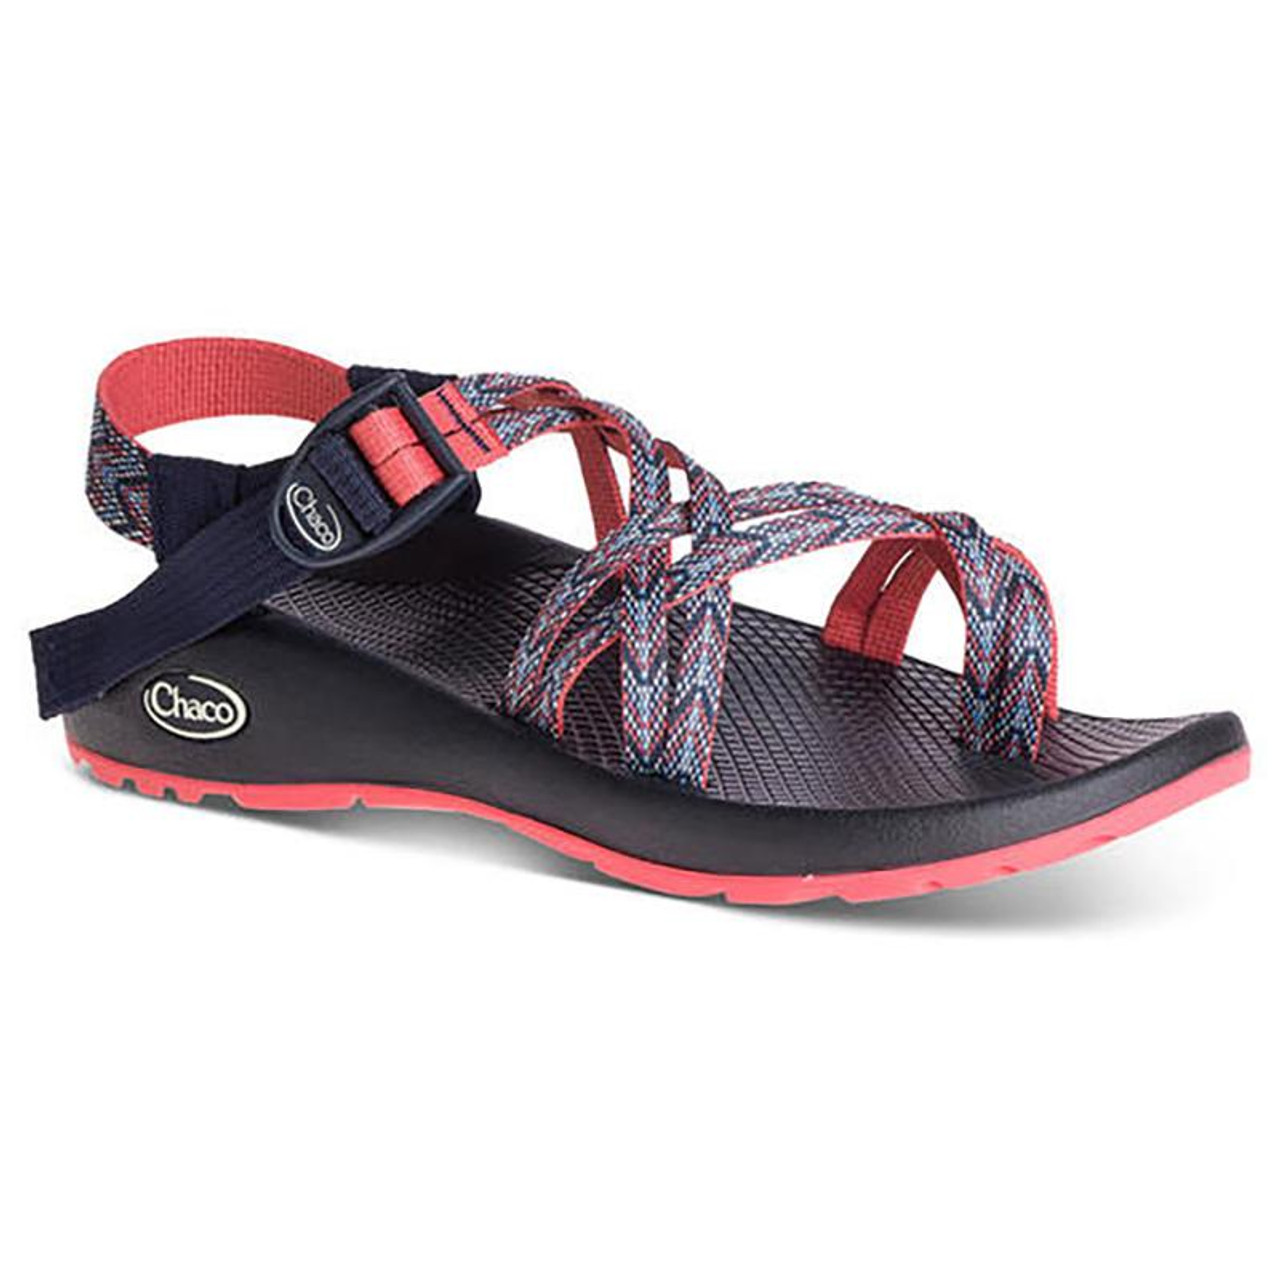 994b4d1d274f Chaco Women s Sandal - ZX 2 Classic - Motif Eclipse - Surf and Dirt